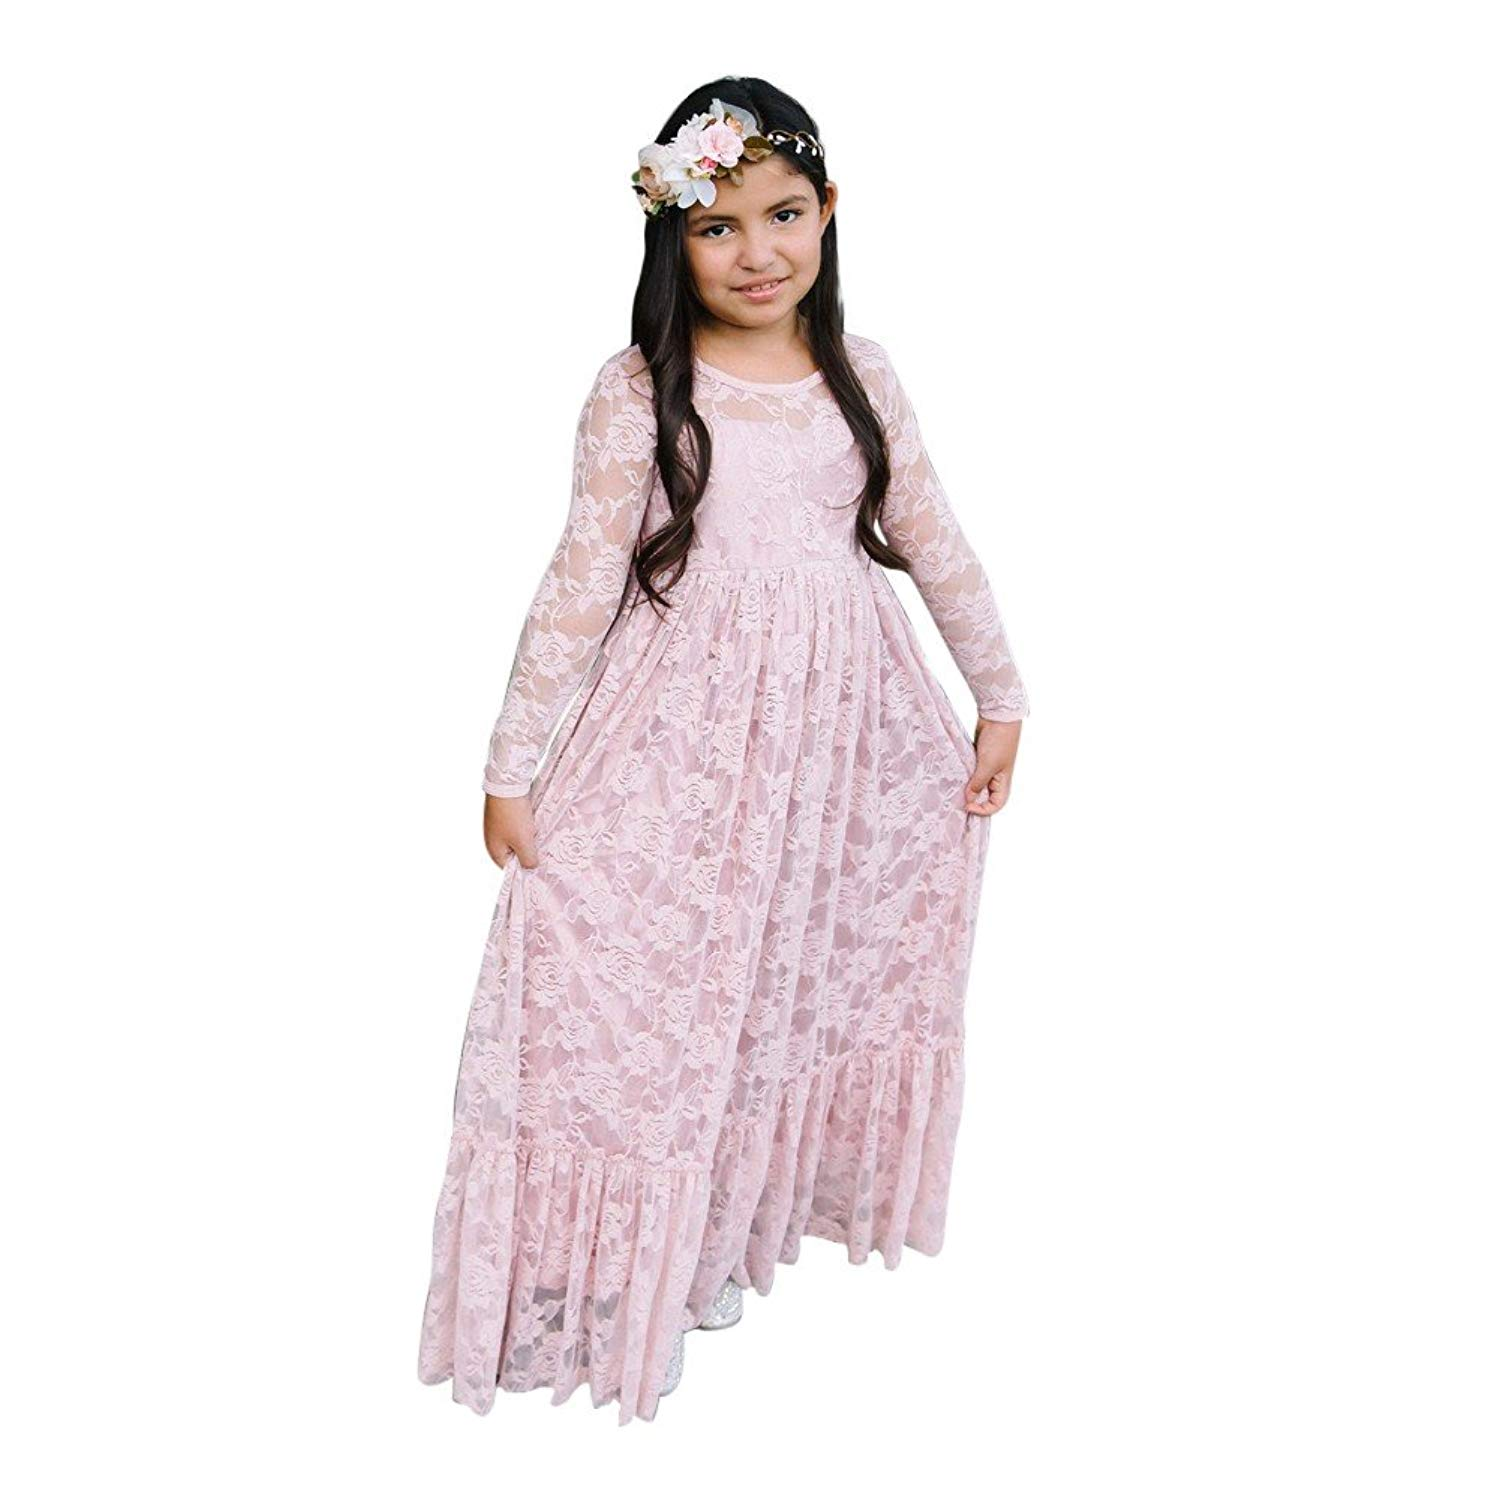 """Think Pink Bows Girls Blush Lace """"Sweetheart"""" Flower Girl Dress 1Y-6"""